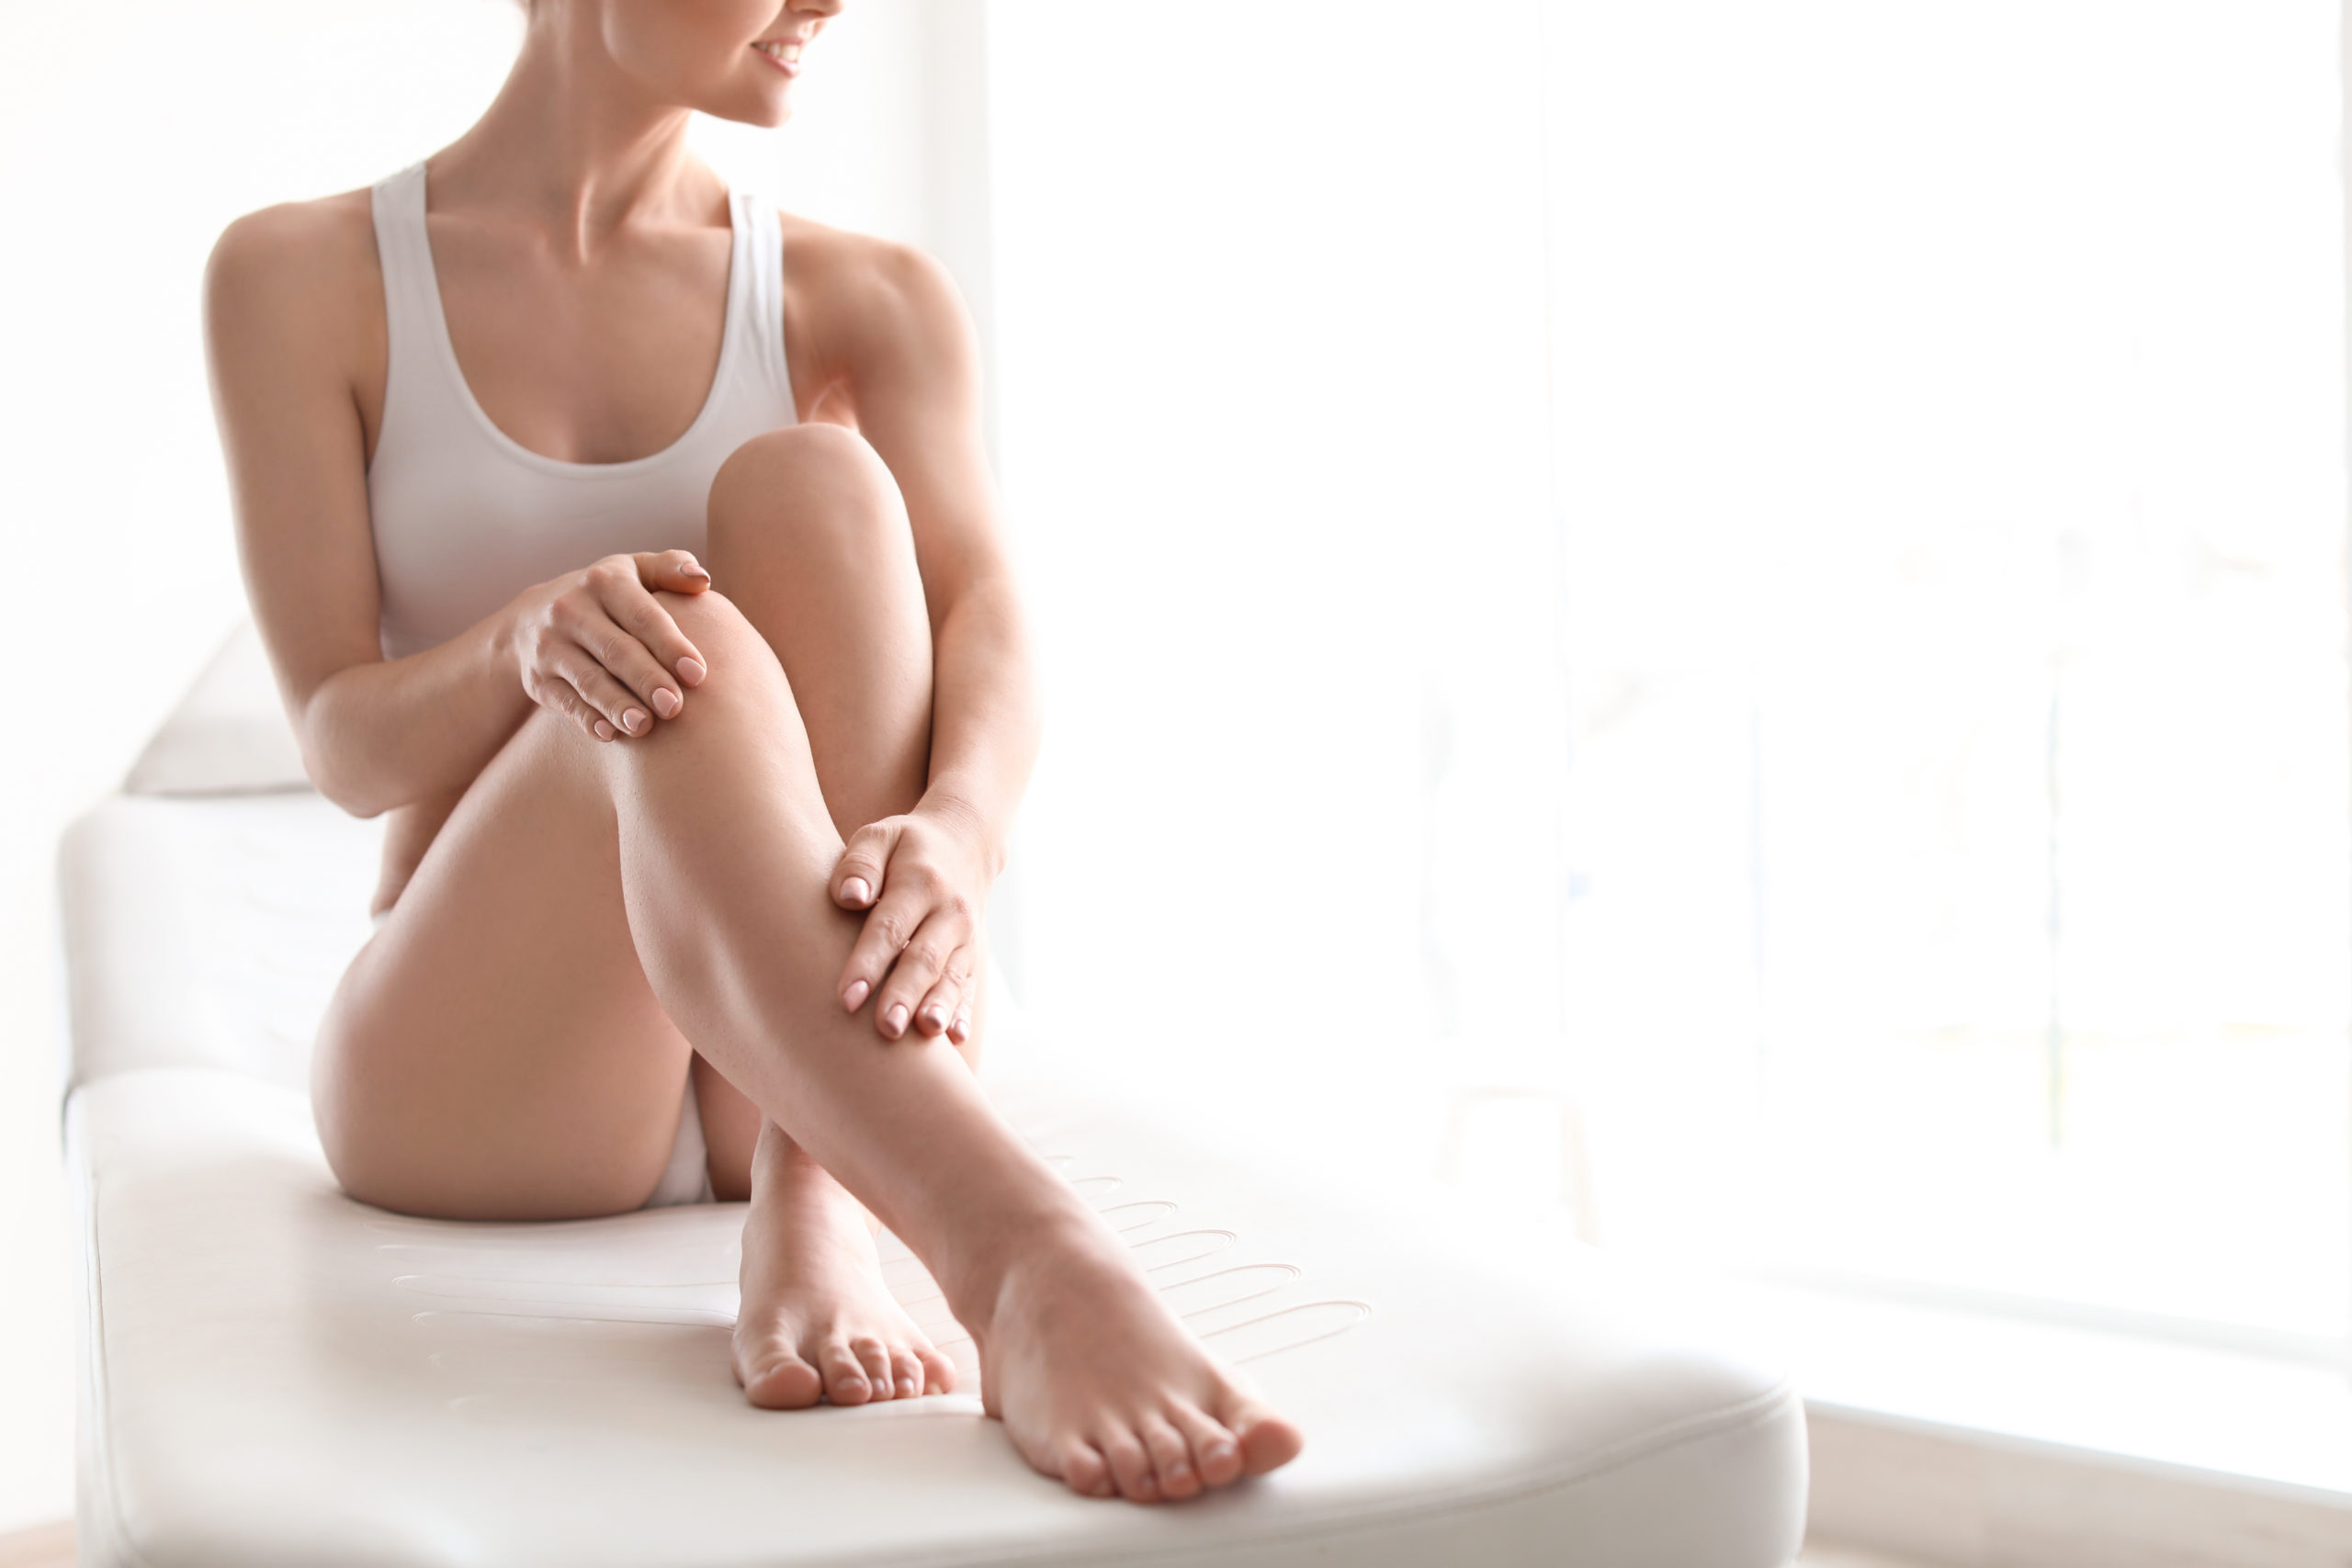 seated woman with smooth skin from laser hair removal